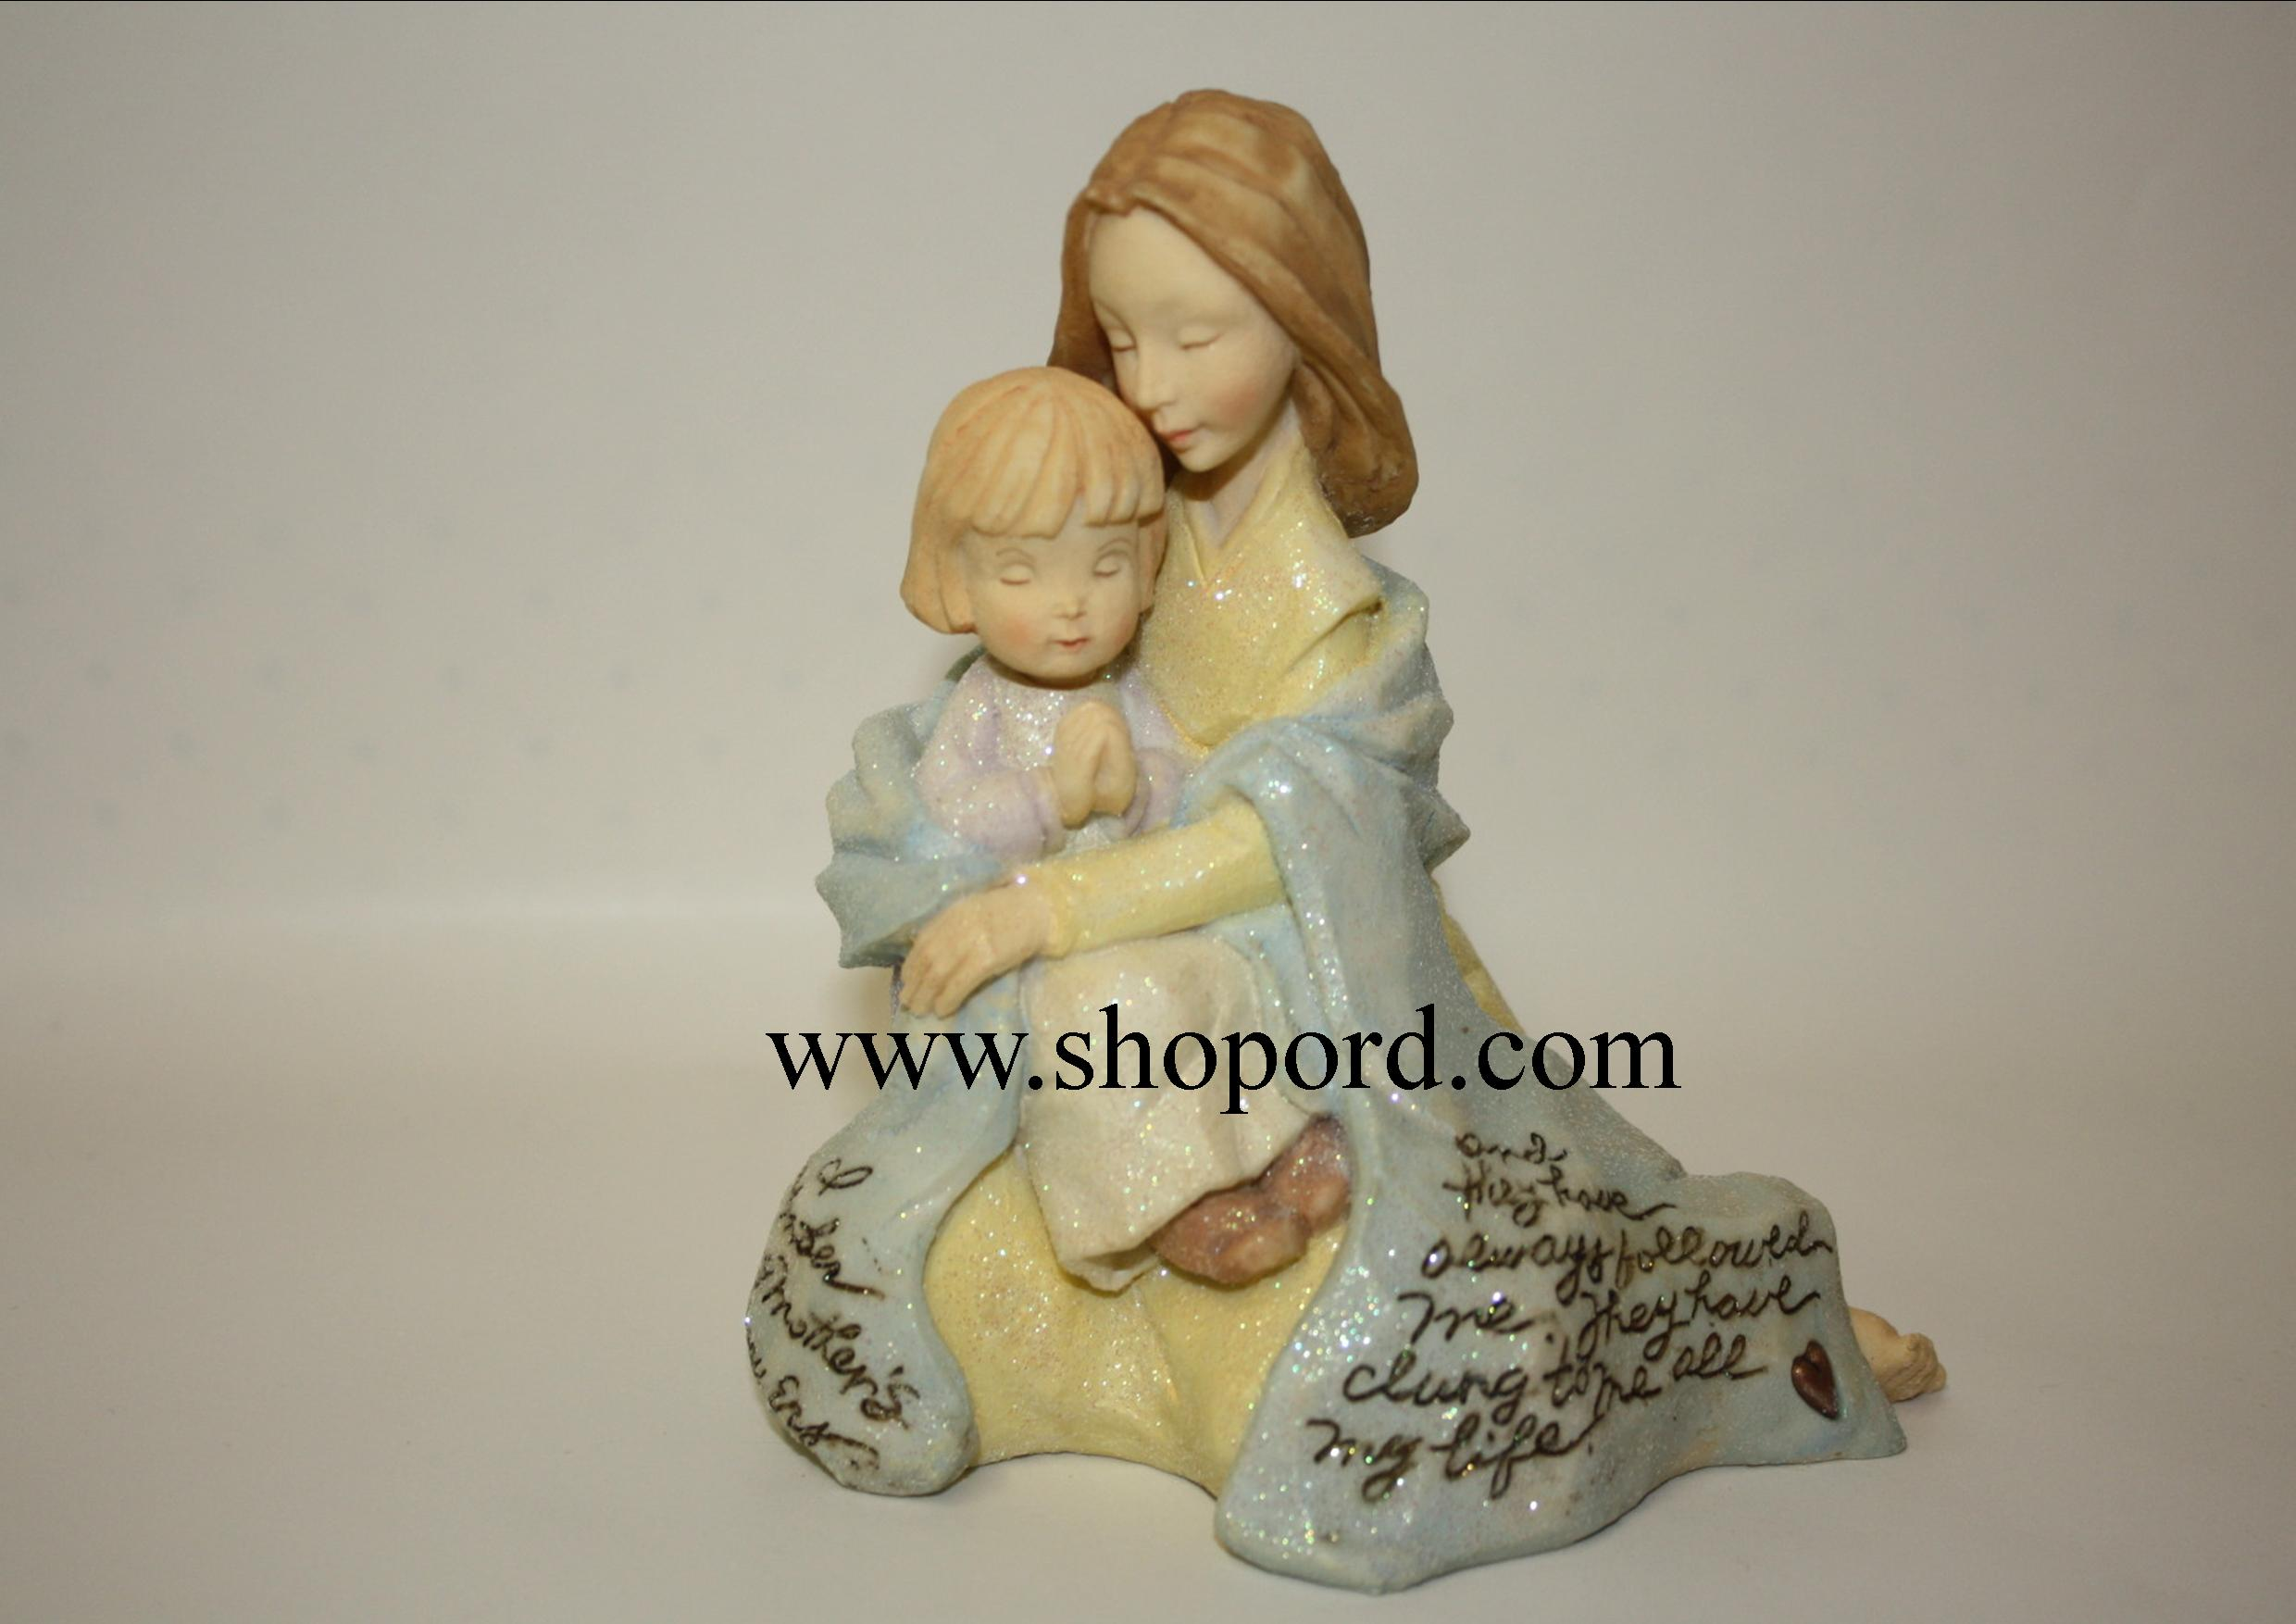 Enesco Foundations Mother and Child Praying Figurine 114260